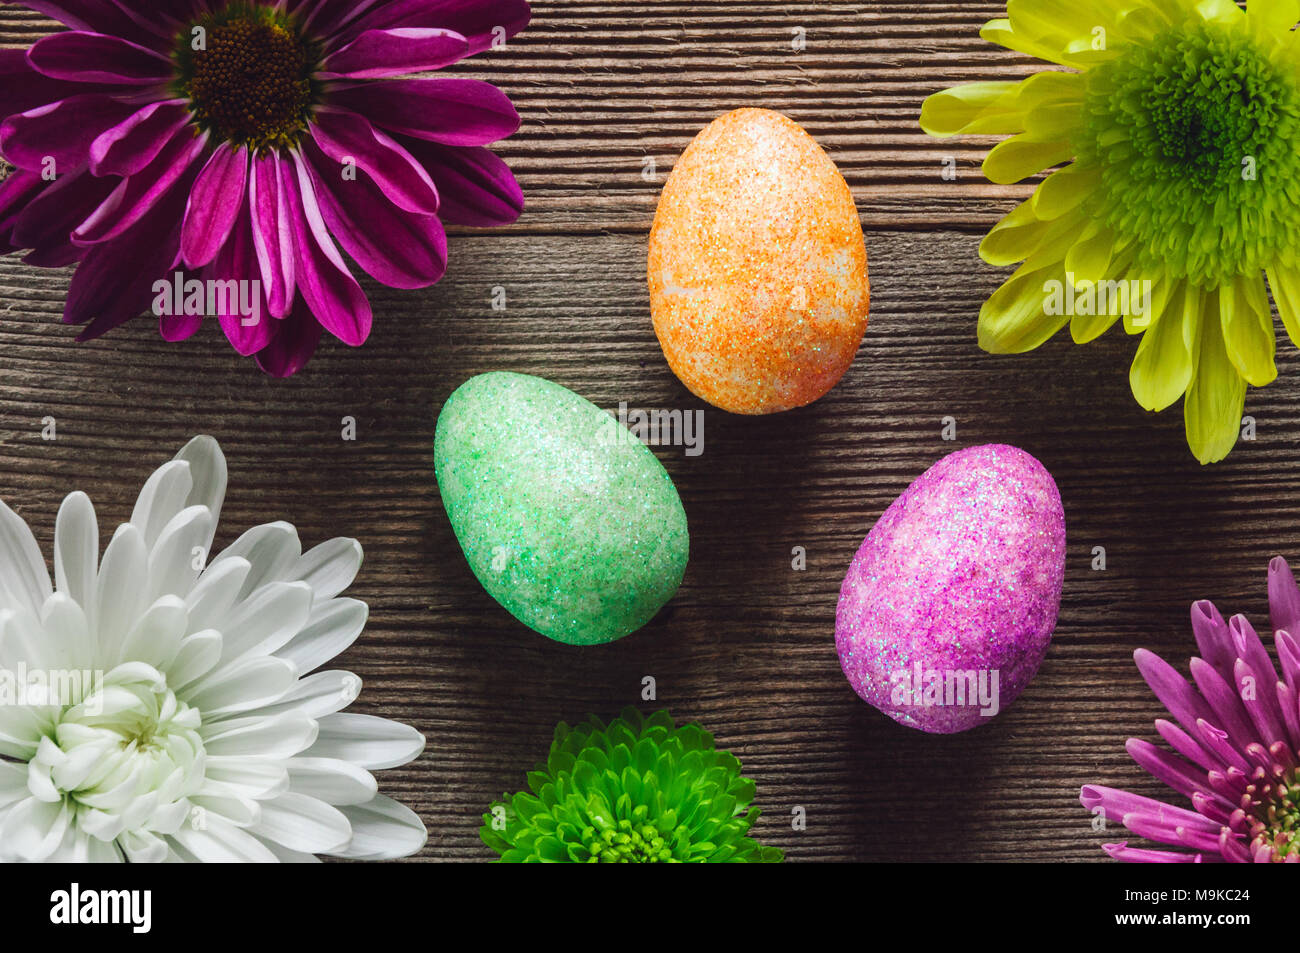 Colorful Eggs and Flowers on Wood Table - Stock Image